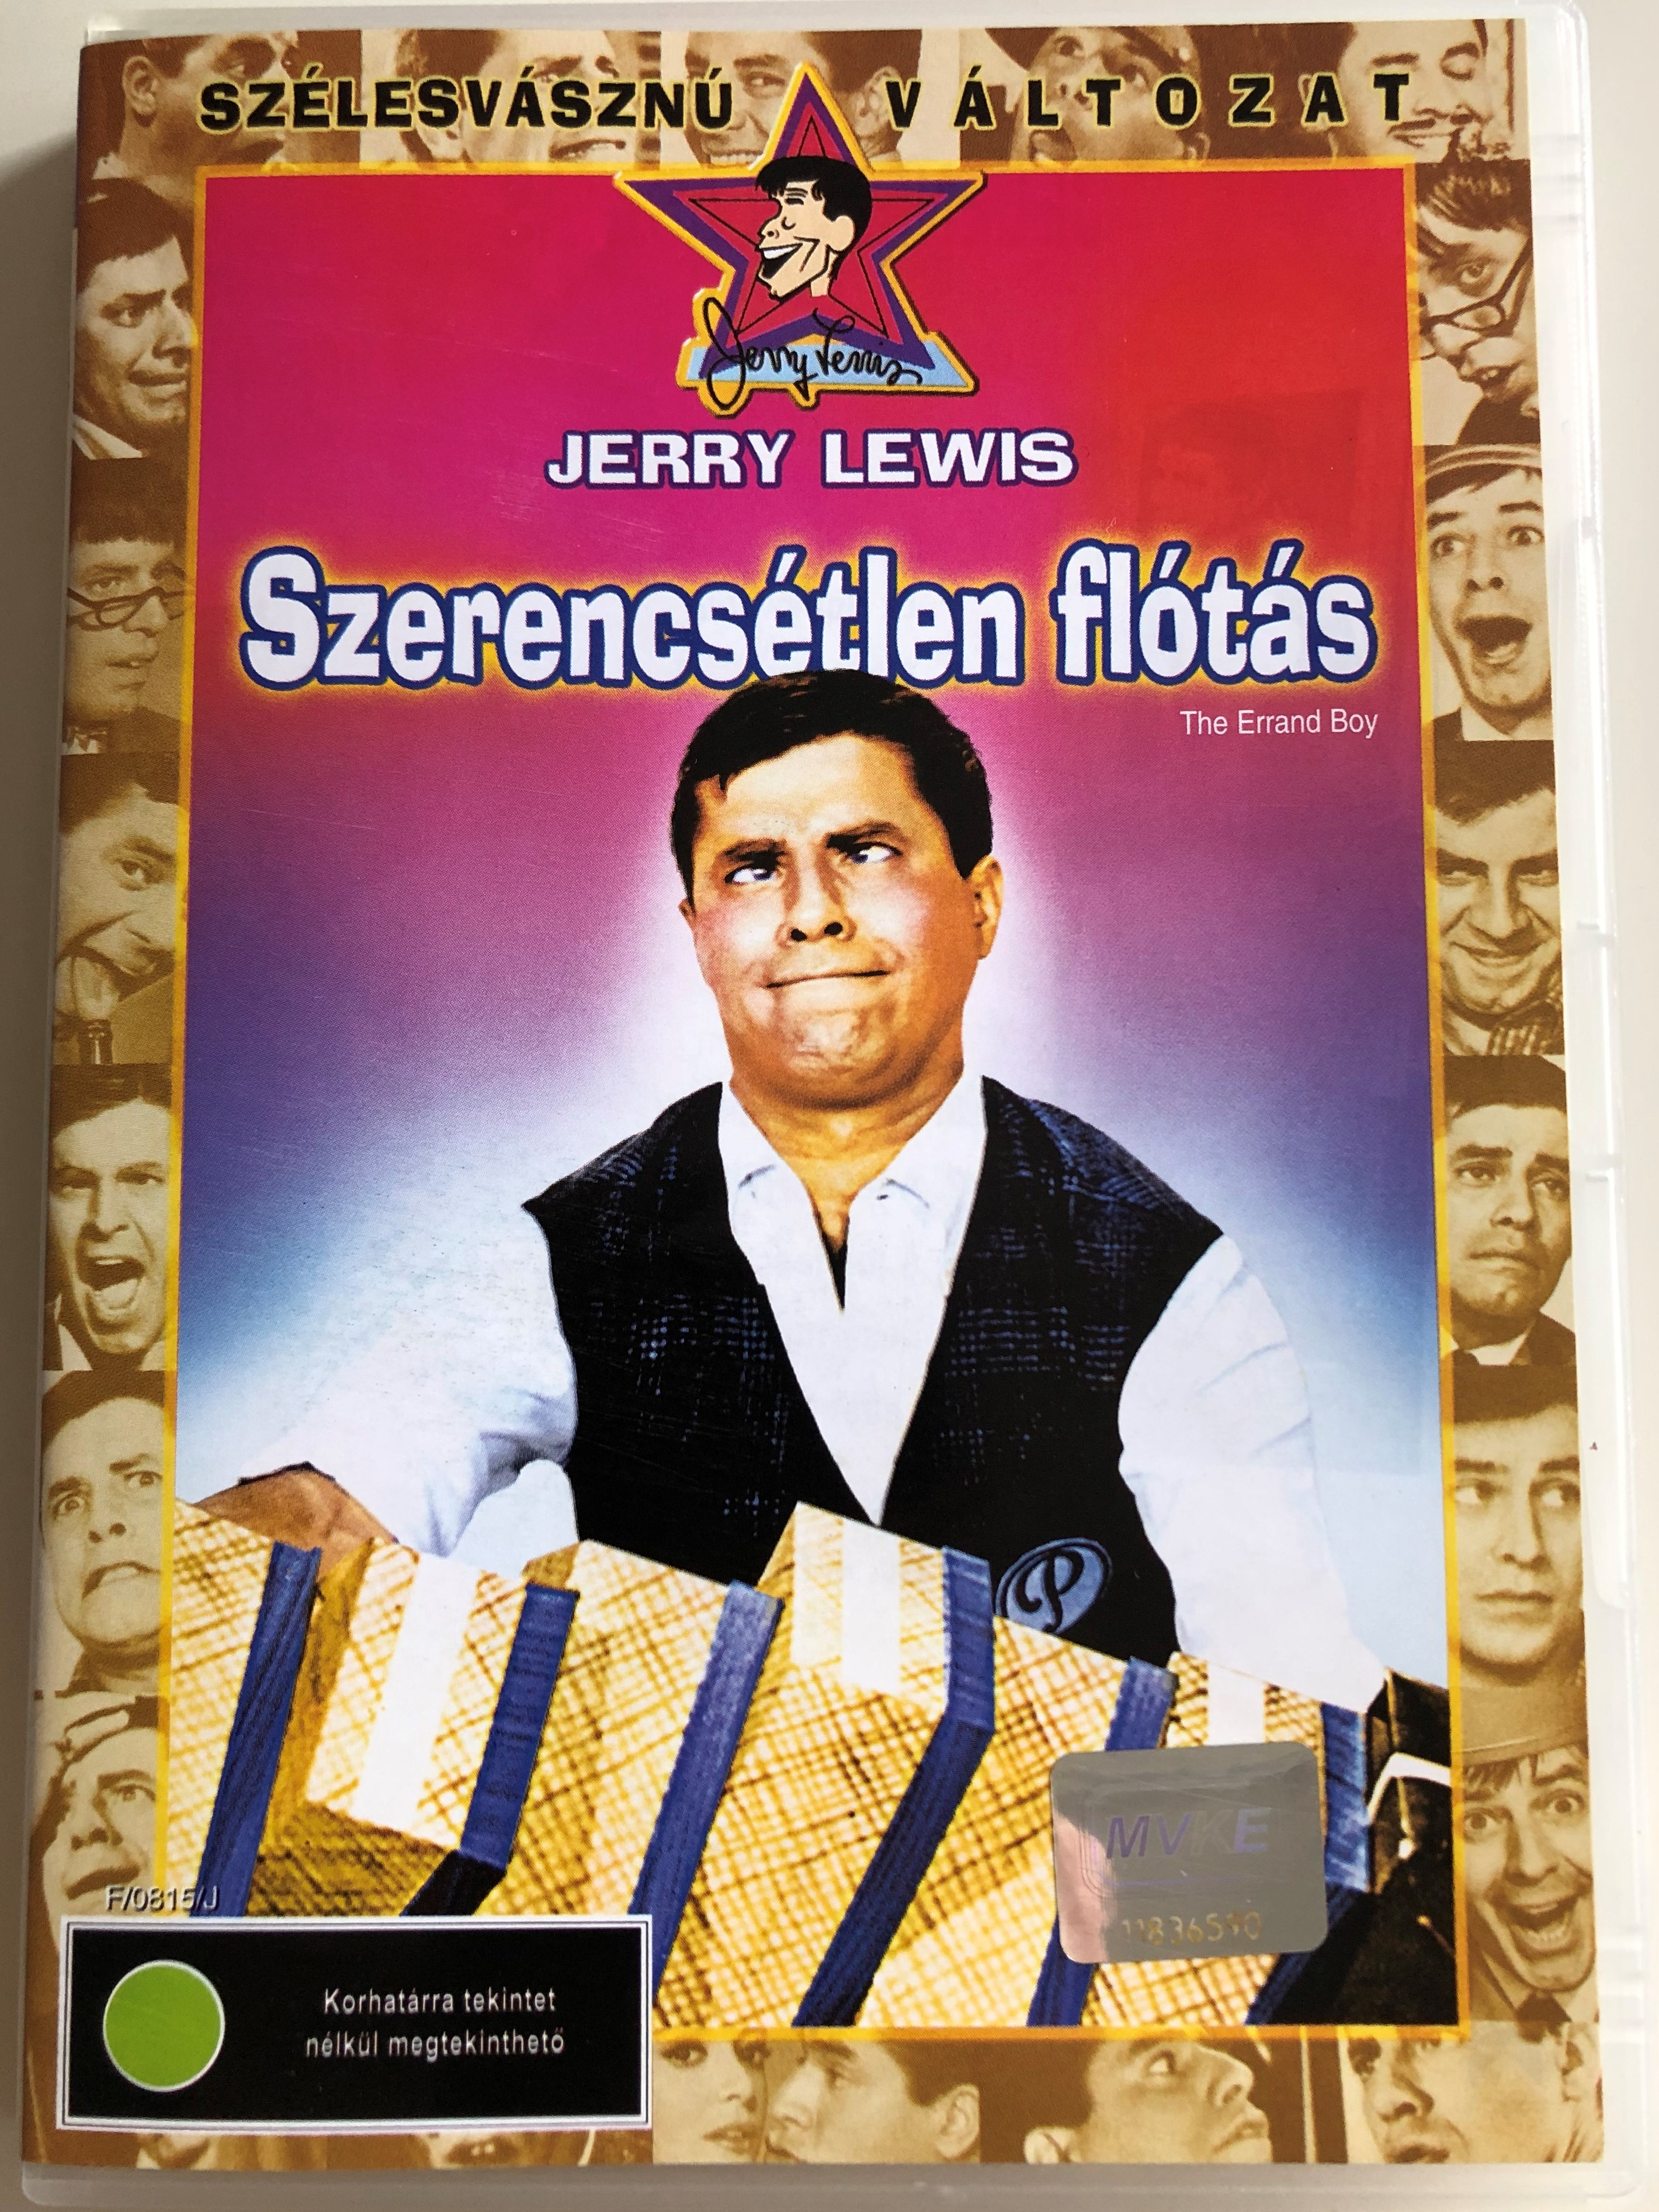 the-errand-boy-dvd-1961-szerencs-tlen-fl-t-s-directed-by-jerry-lewis-starring-jerry-lewis-brian-donlevy-howard-mcnear-dick-wesson-1-.jpg